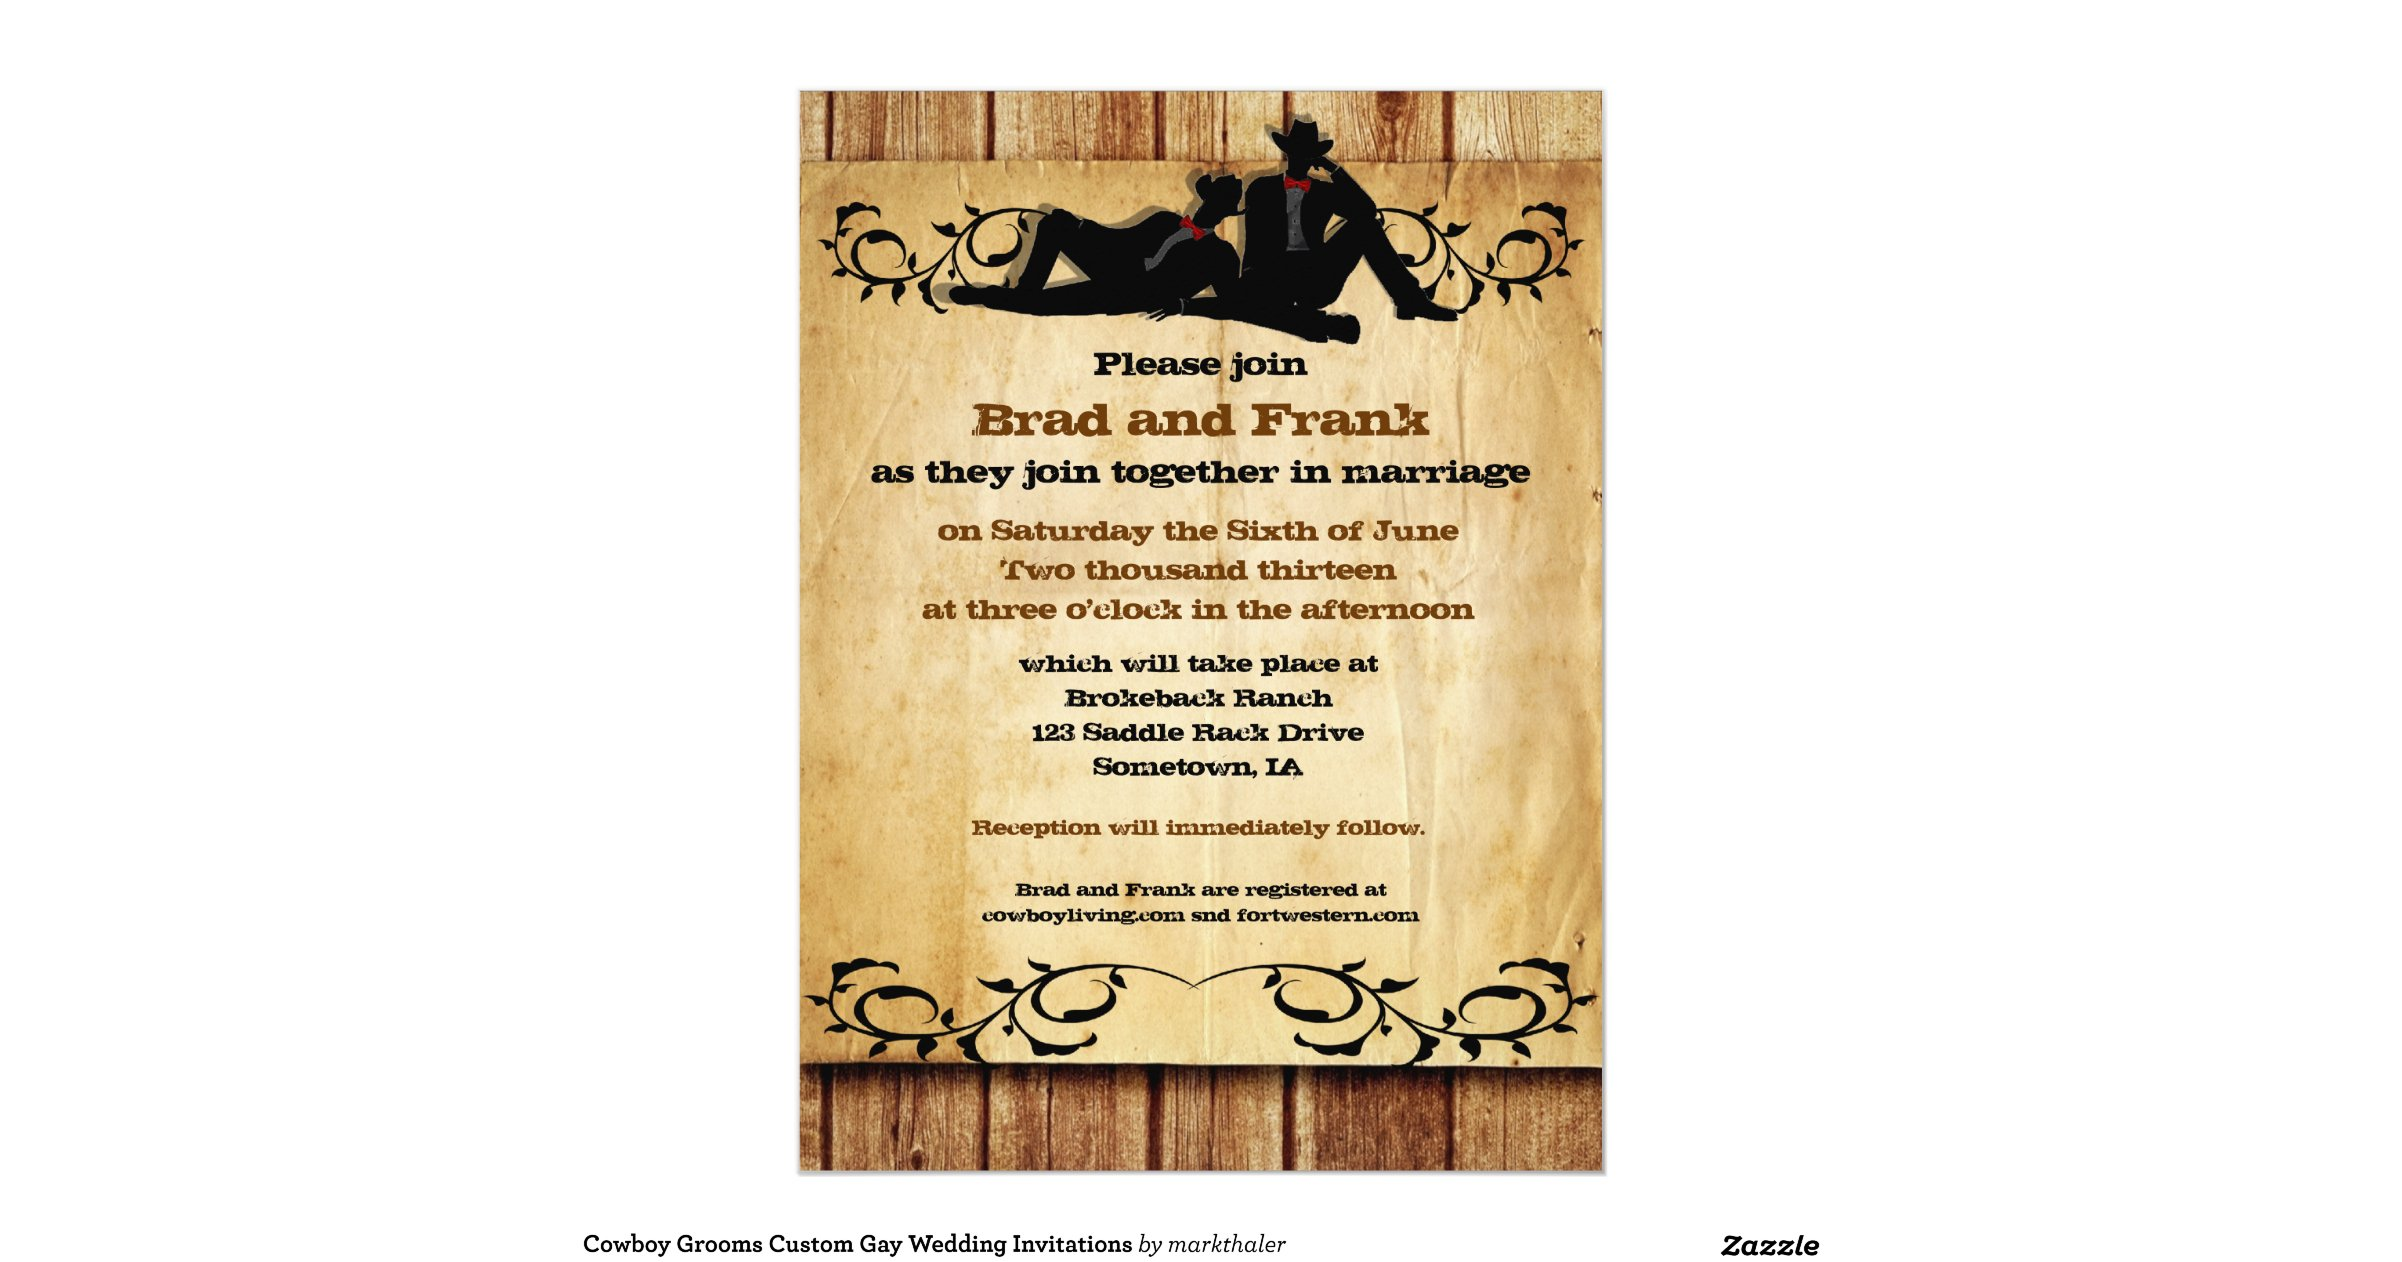 Gay Marriage Wedding Invitations: Cowboy_grooms_custom_gay_wedding_invitations